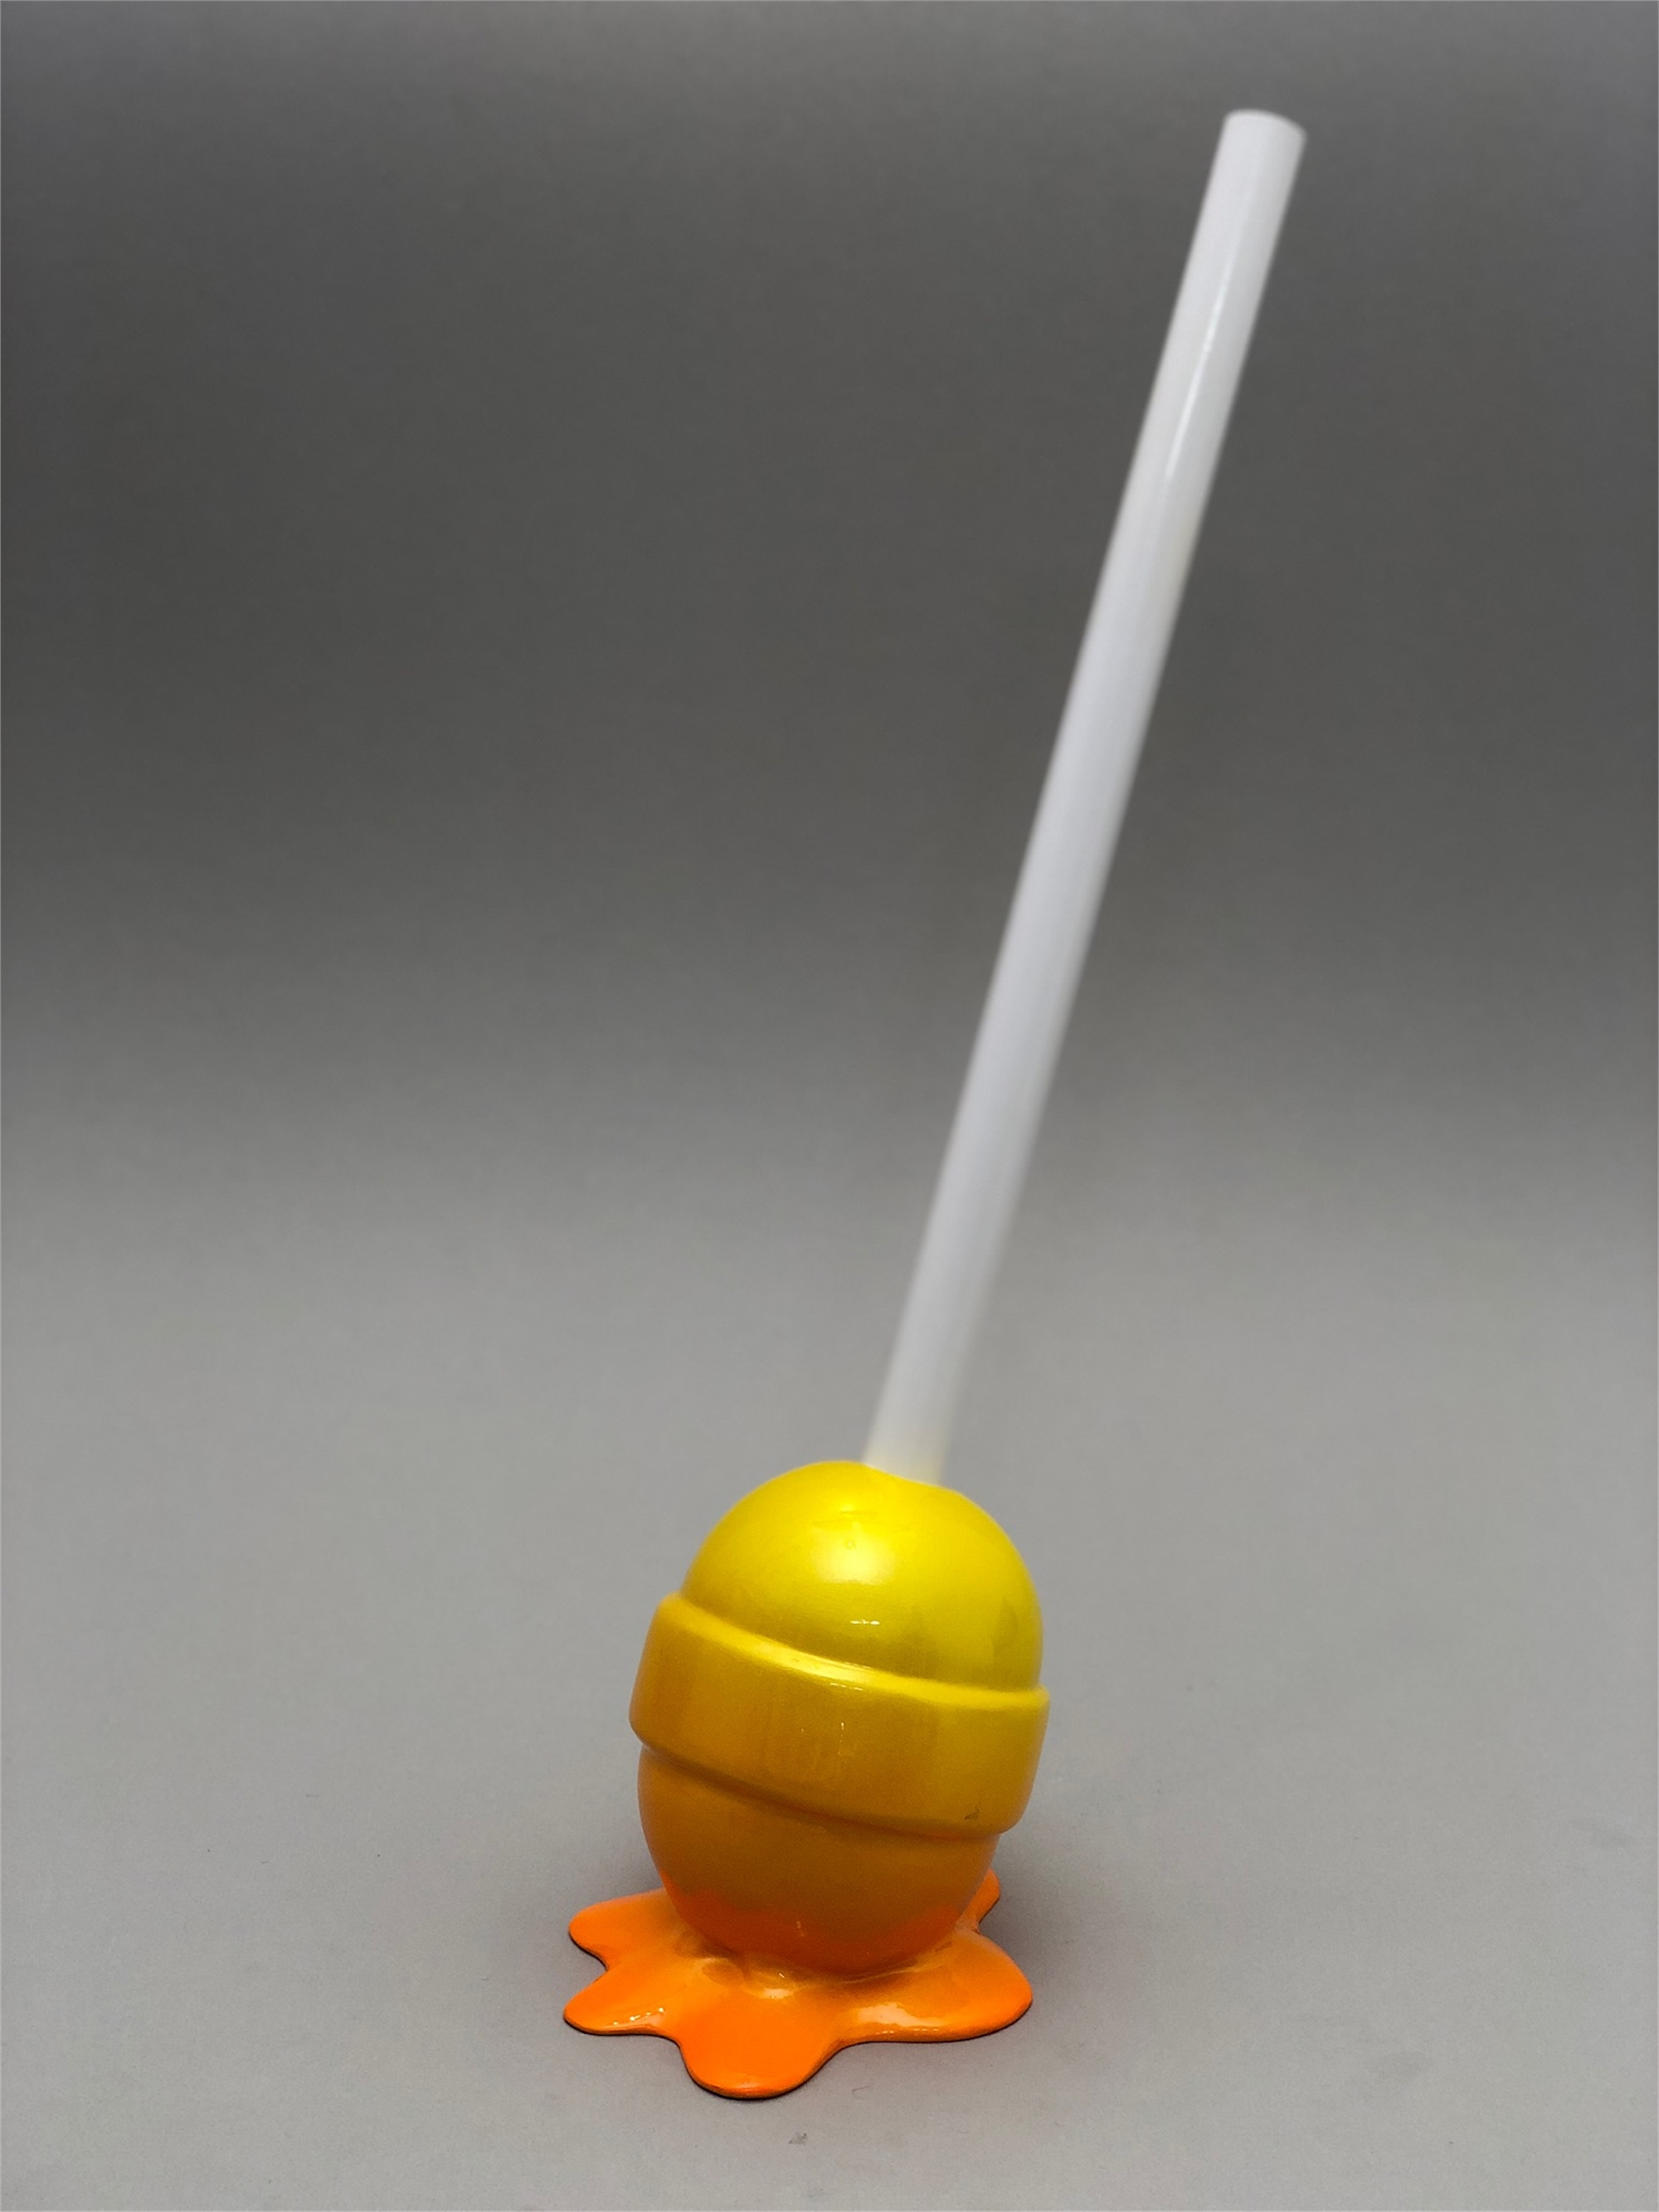 The Sweet Life, small, yellow/orange ombré Lollipop by Elena Bulatova